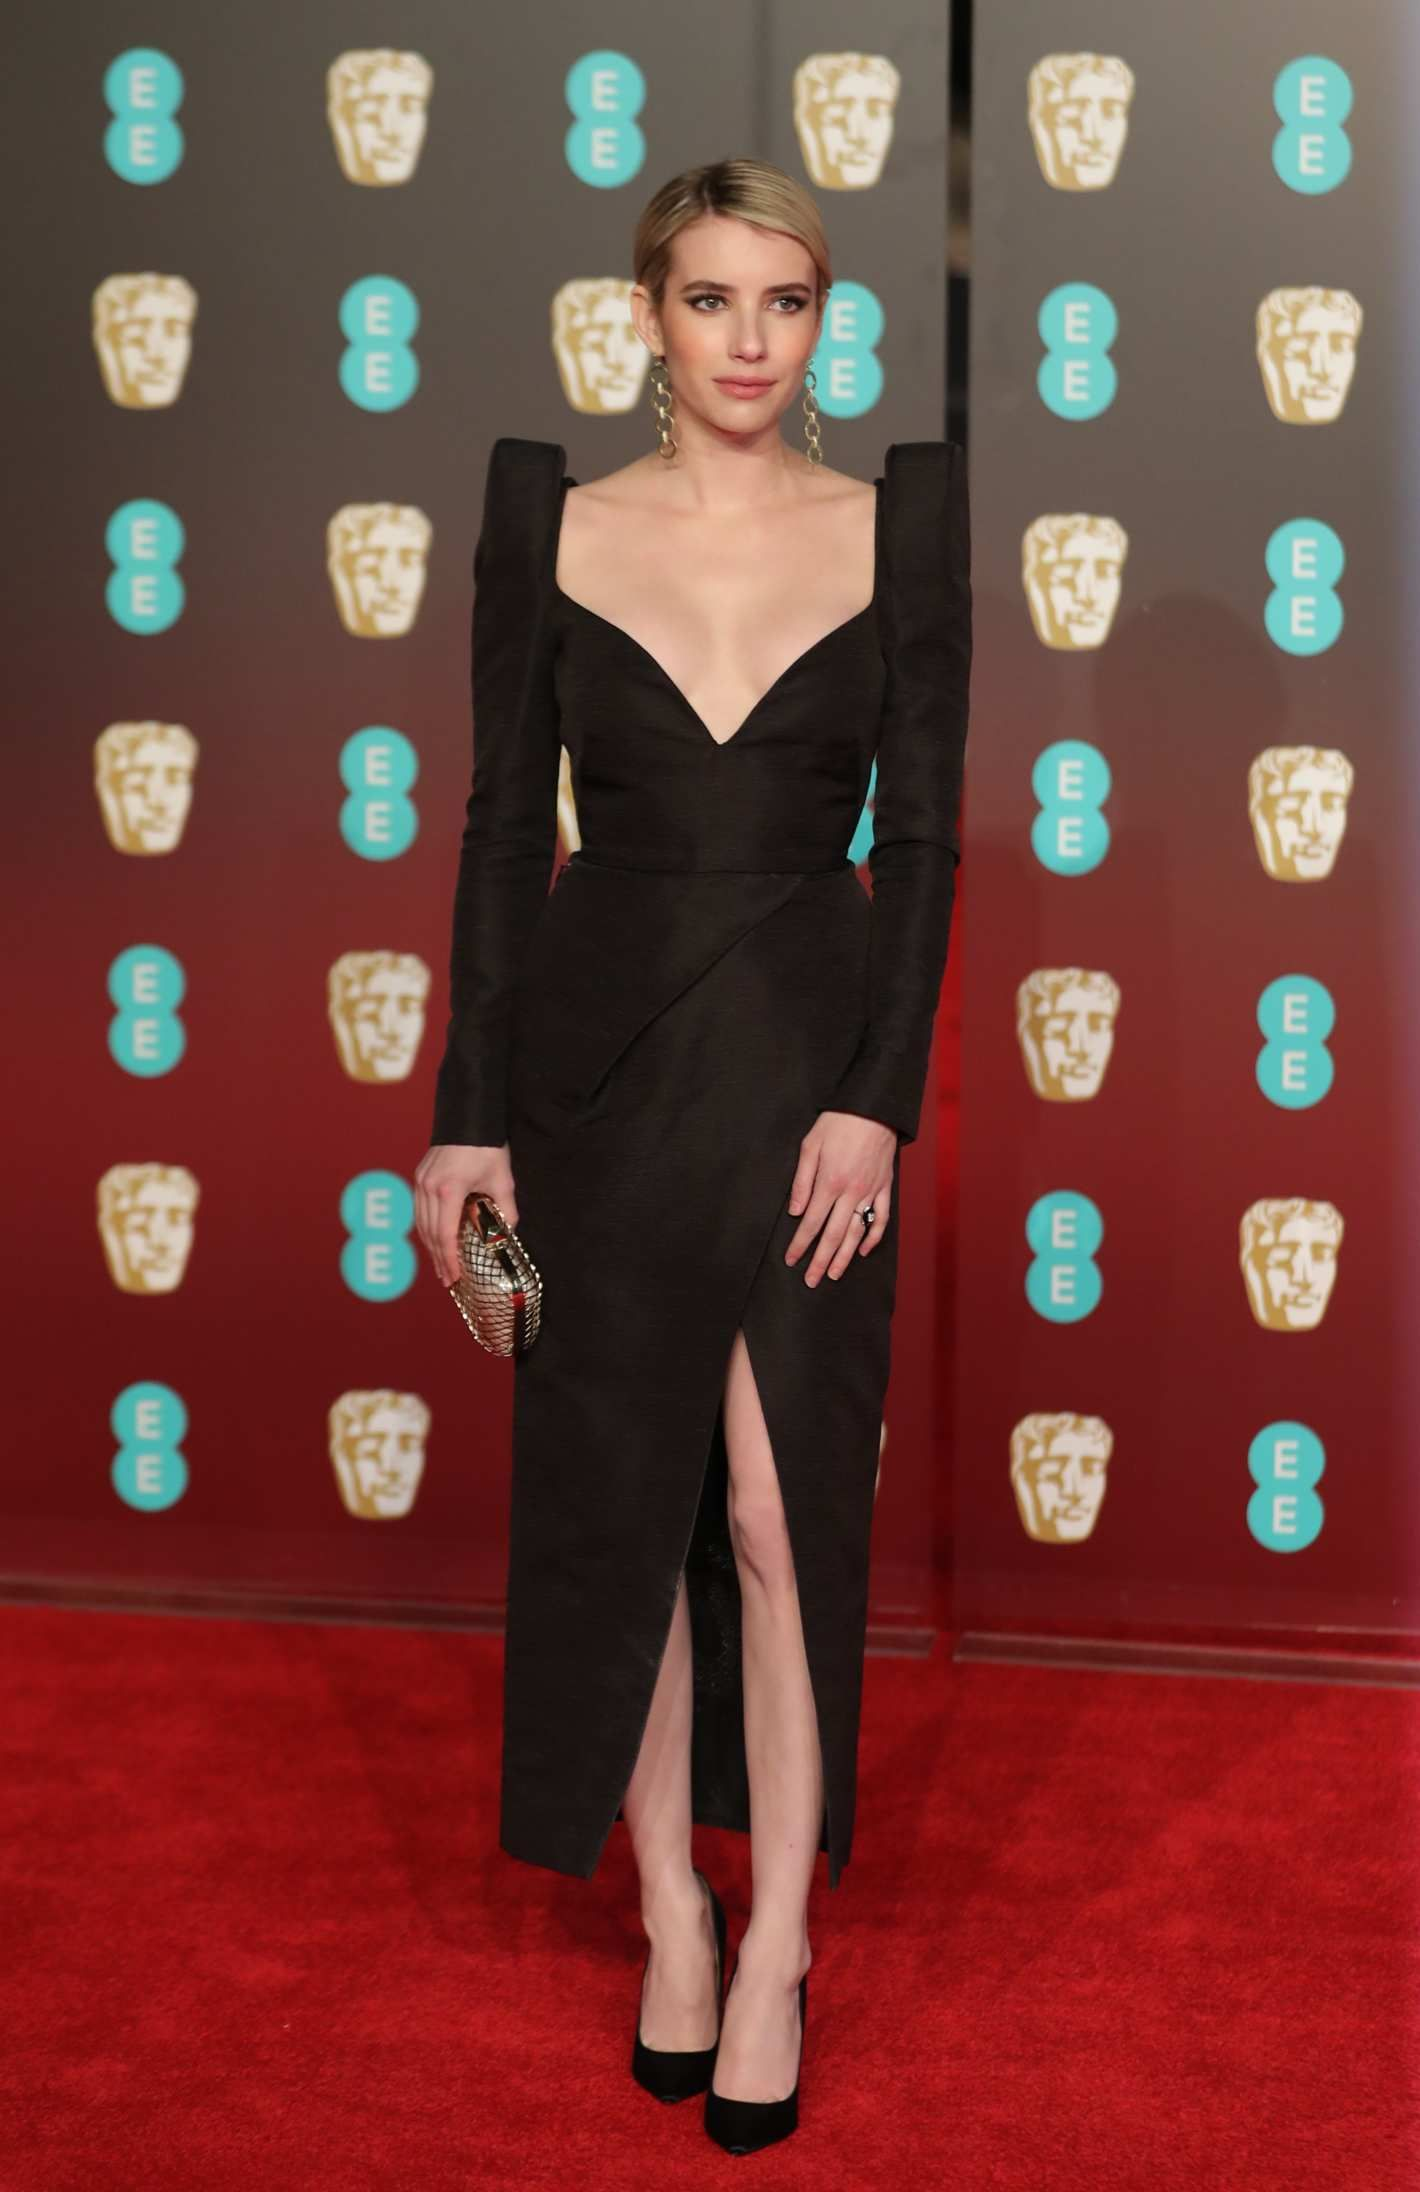 The 10 Best Looks From The Baftas Celebrity Style Red Carpet Dazzling Dress Fashion